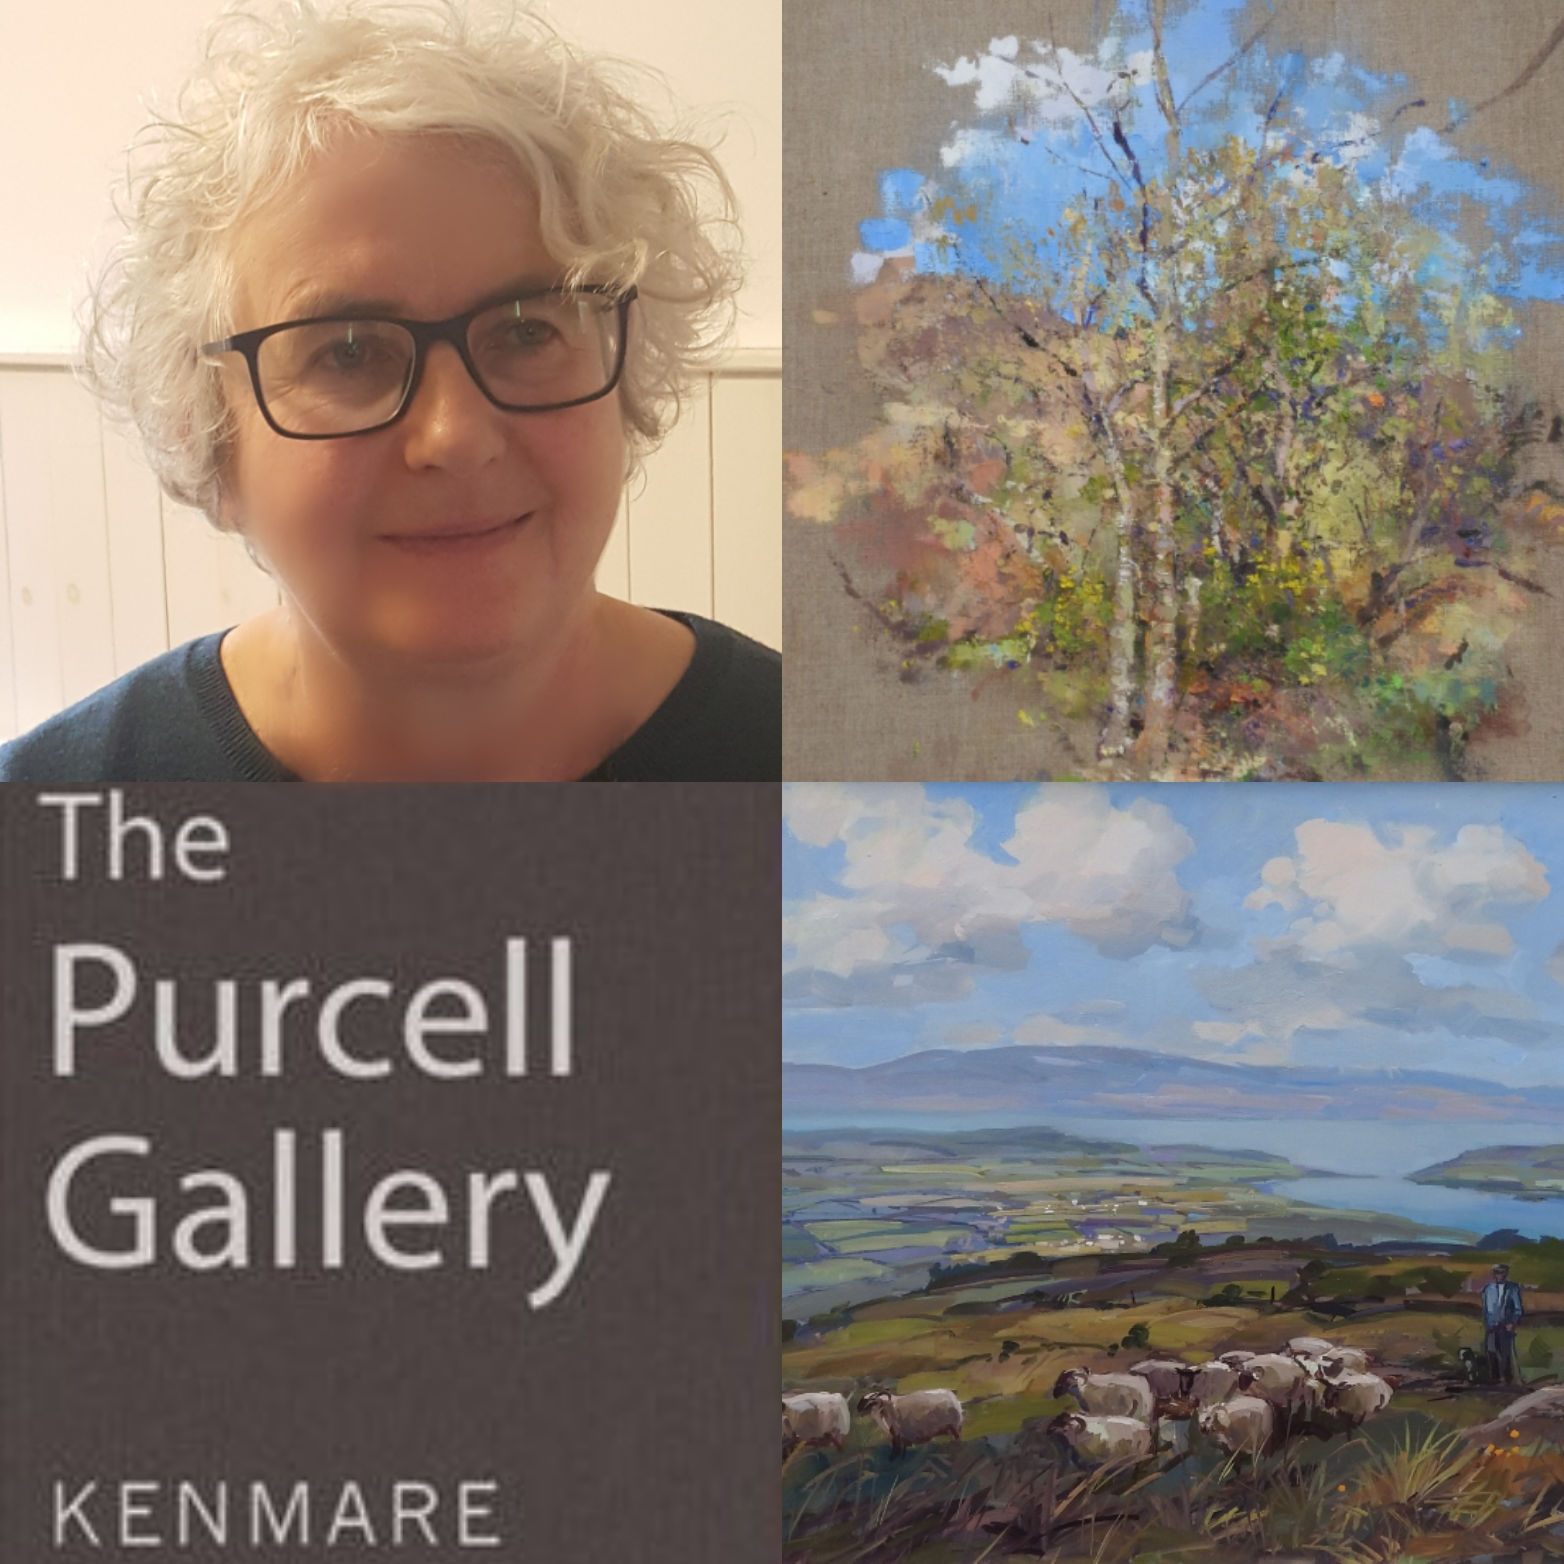 The Gallery - The Purcell Gallery is situated in the heritage town of Kenmare, in an area of enchanting beauty bridging the Iveragh and Beara peninsulas. Artists have been drawn to live and work in this area for decades, a variety of whom exhibit at the gallery.